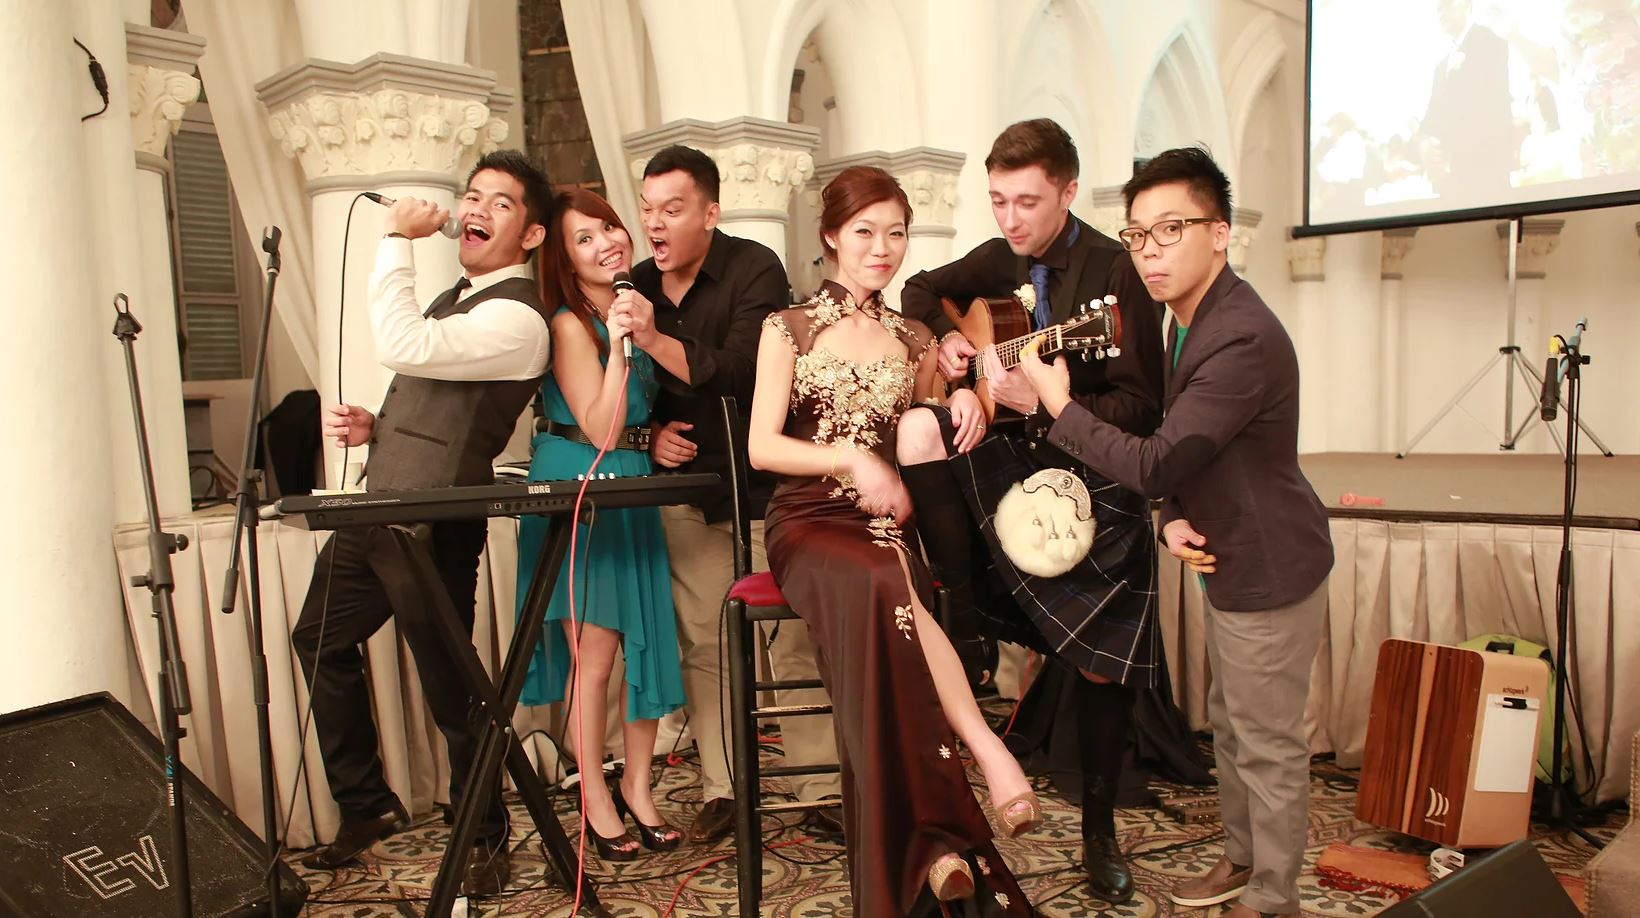 A Unique and Memorable Way for Music at Your Wedding: A Live Band